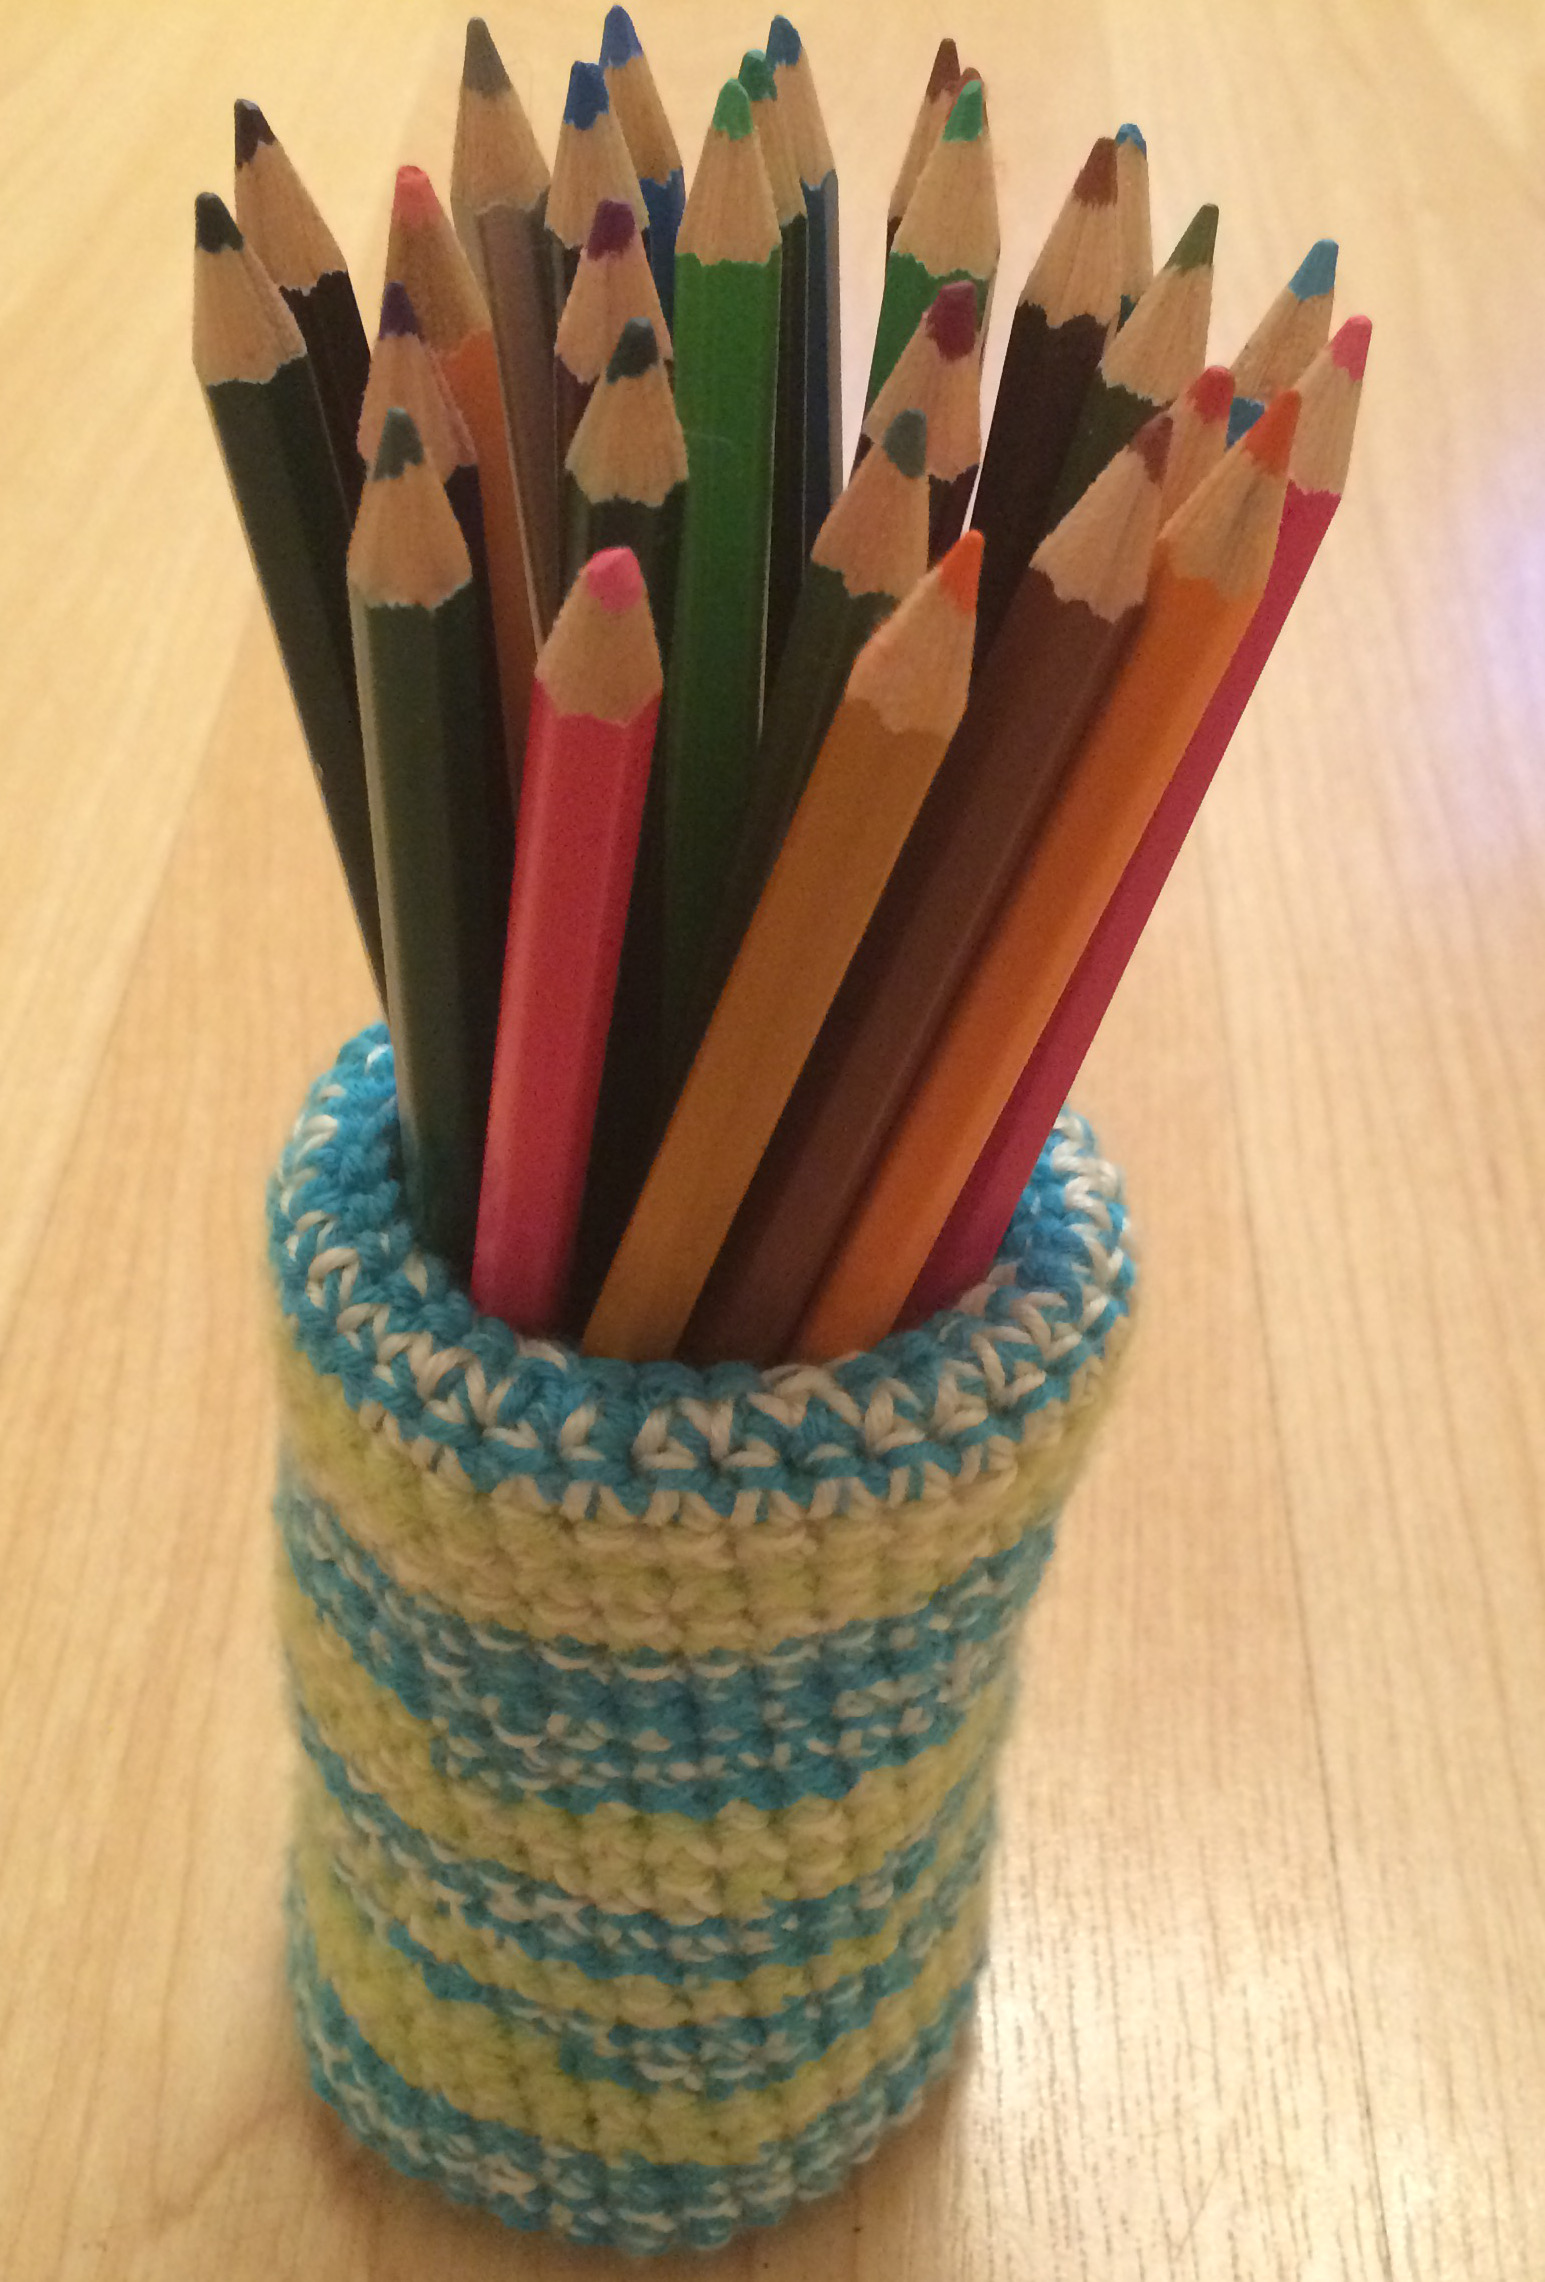 How To Crochet A Pencil Holder - Your Gorgeous Crochet Pencil Holder Pattern